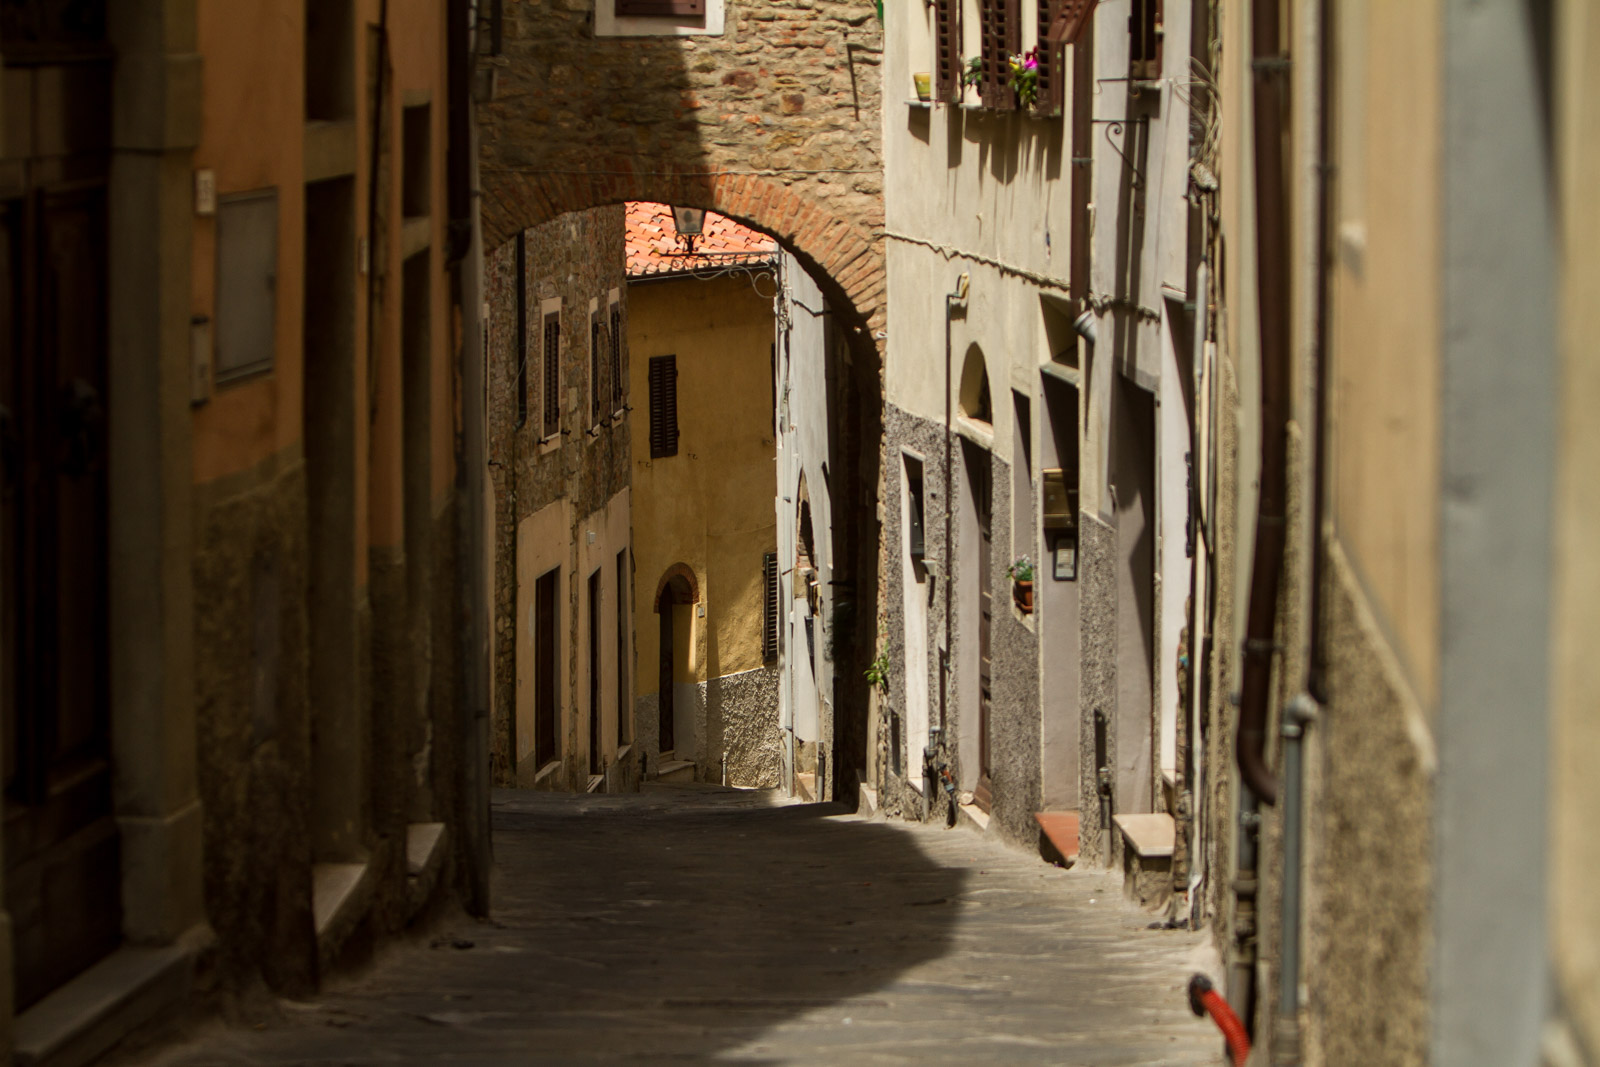 A typical street in Scarlino.